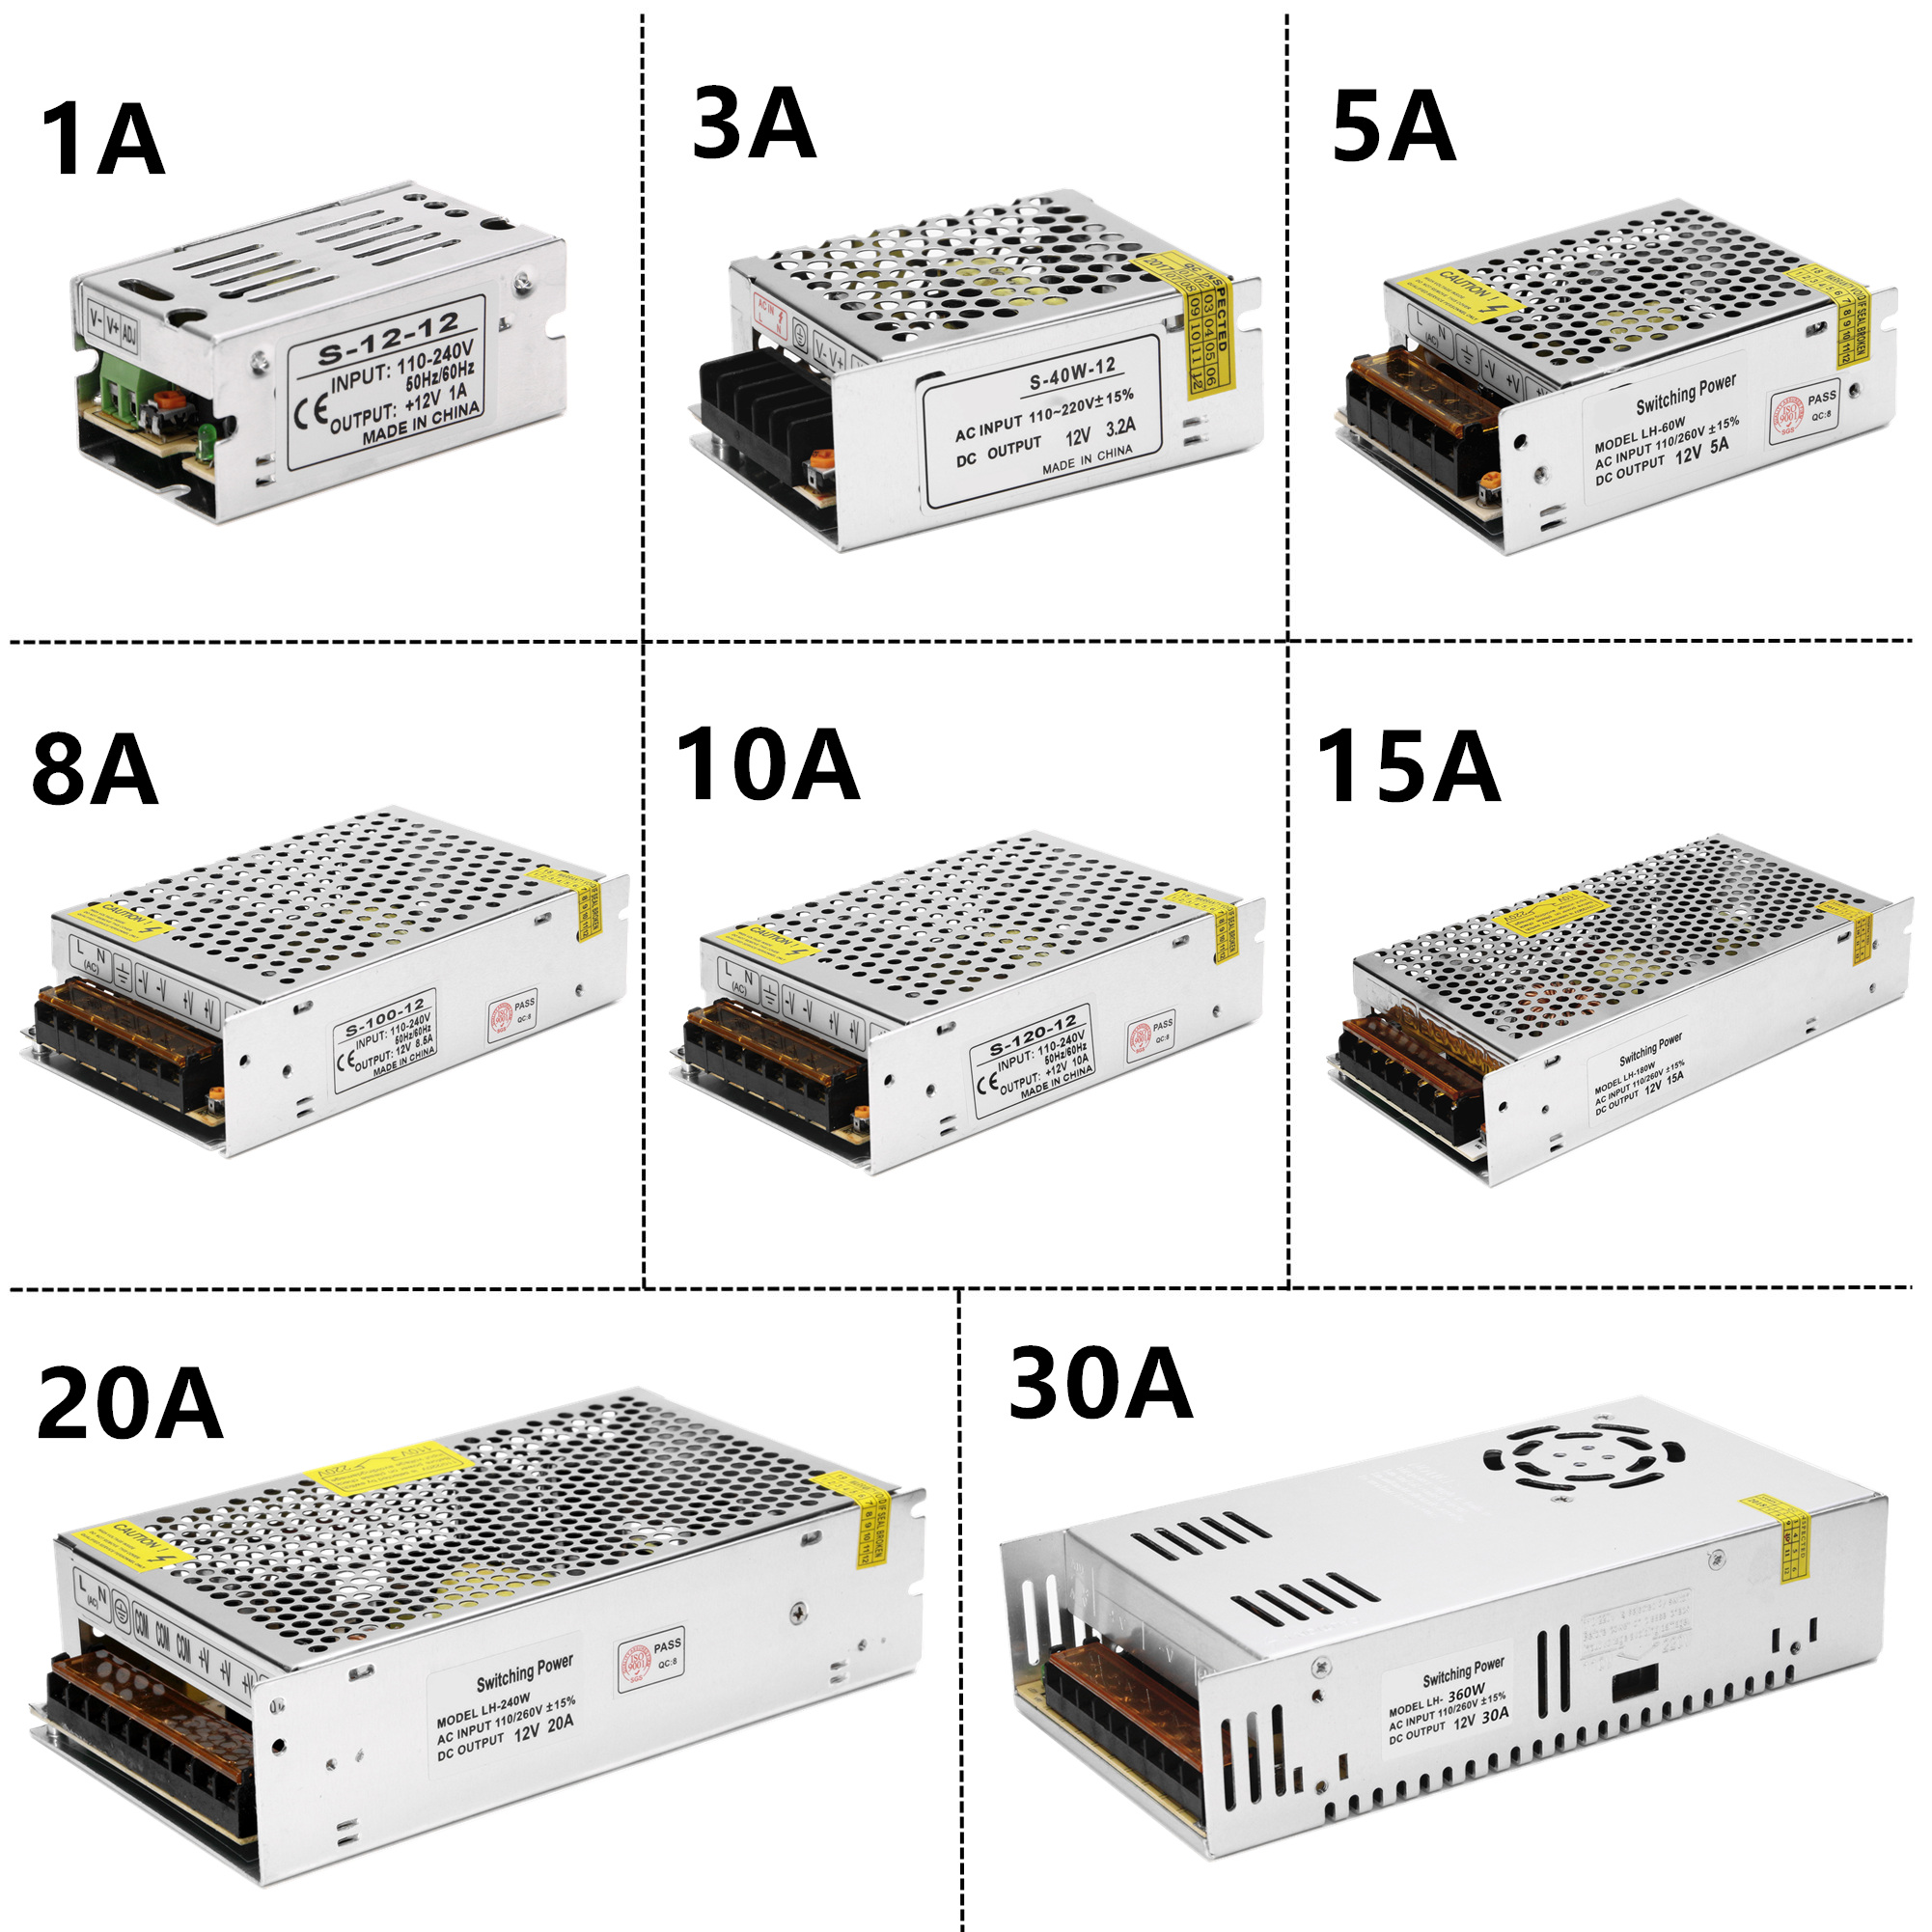 LED Strip Switching Power Supply Adapter 1A  3A 5A 8A 10A 15A 20A 30A Lighting Transformer AC100V-240V To DC12V